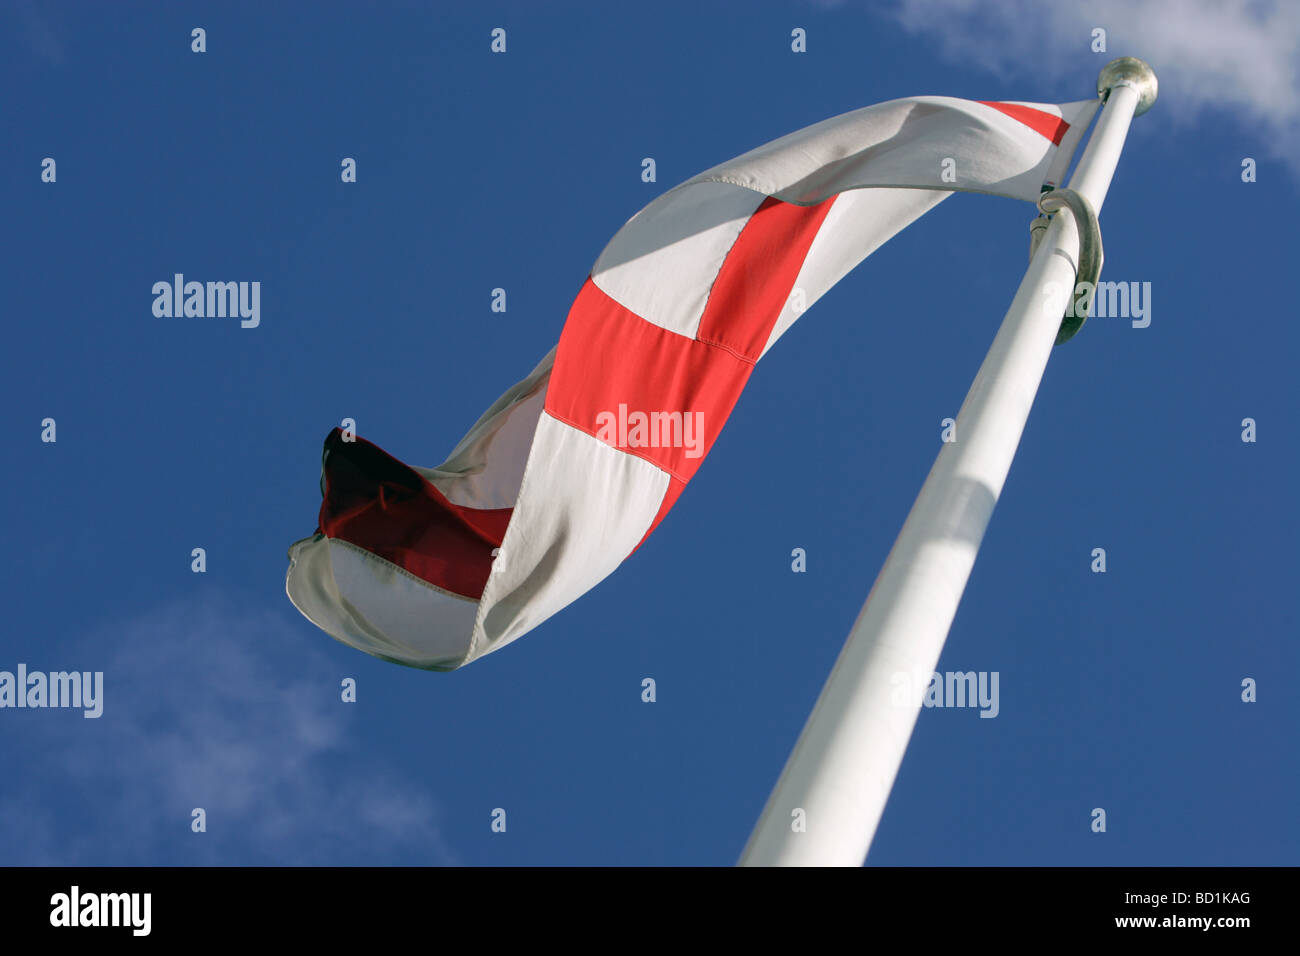 The flag of St George. - Stock Image